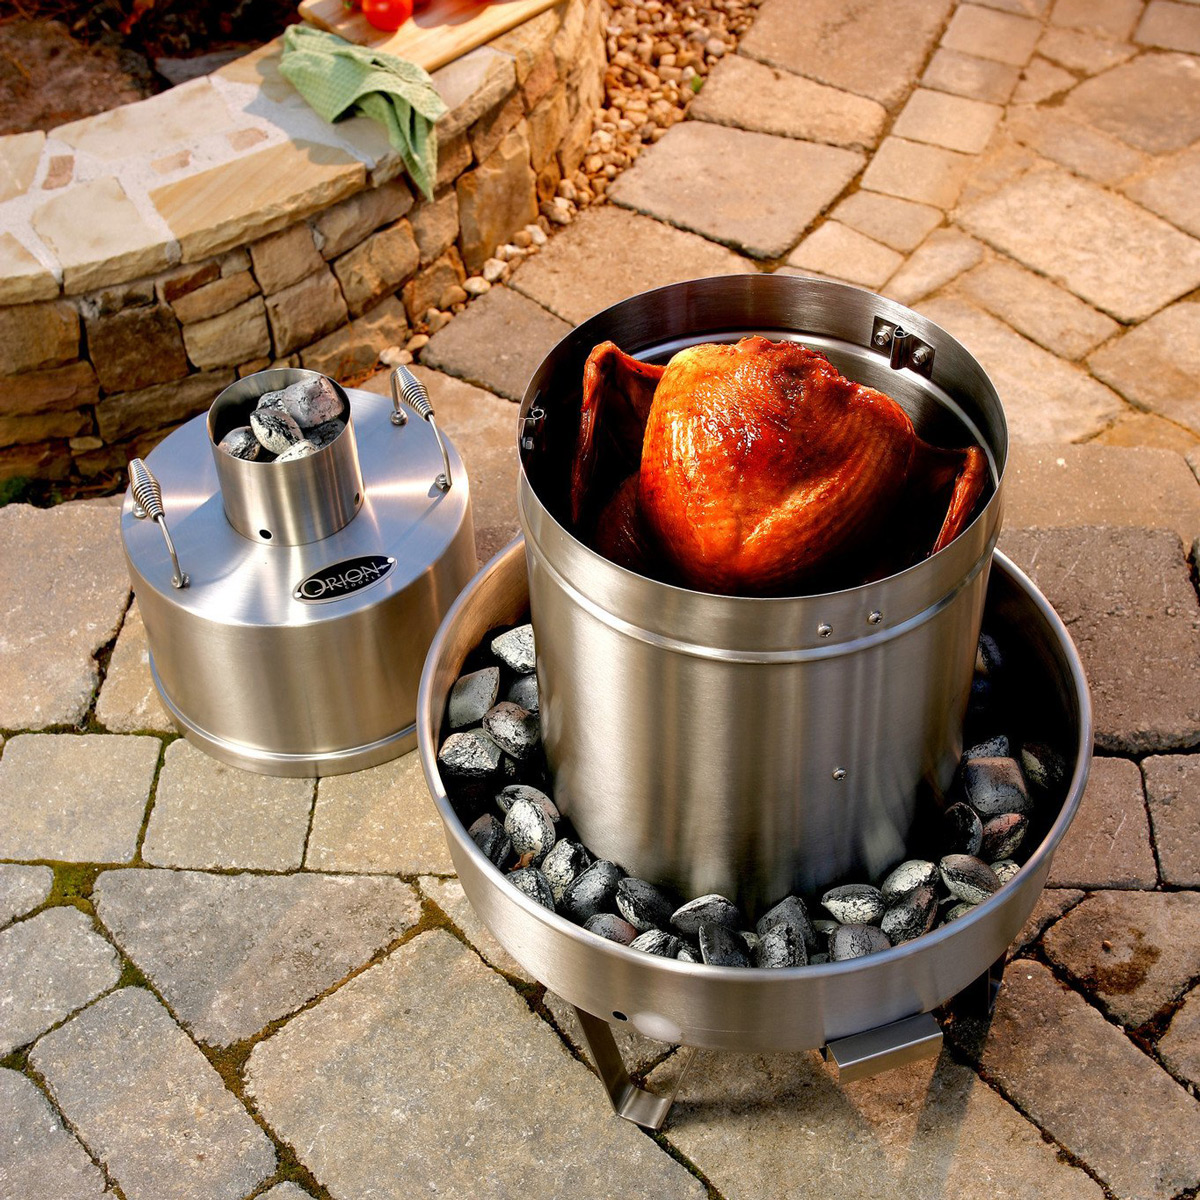 Orion Cooker Fast And Worry Free Convection